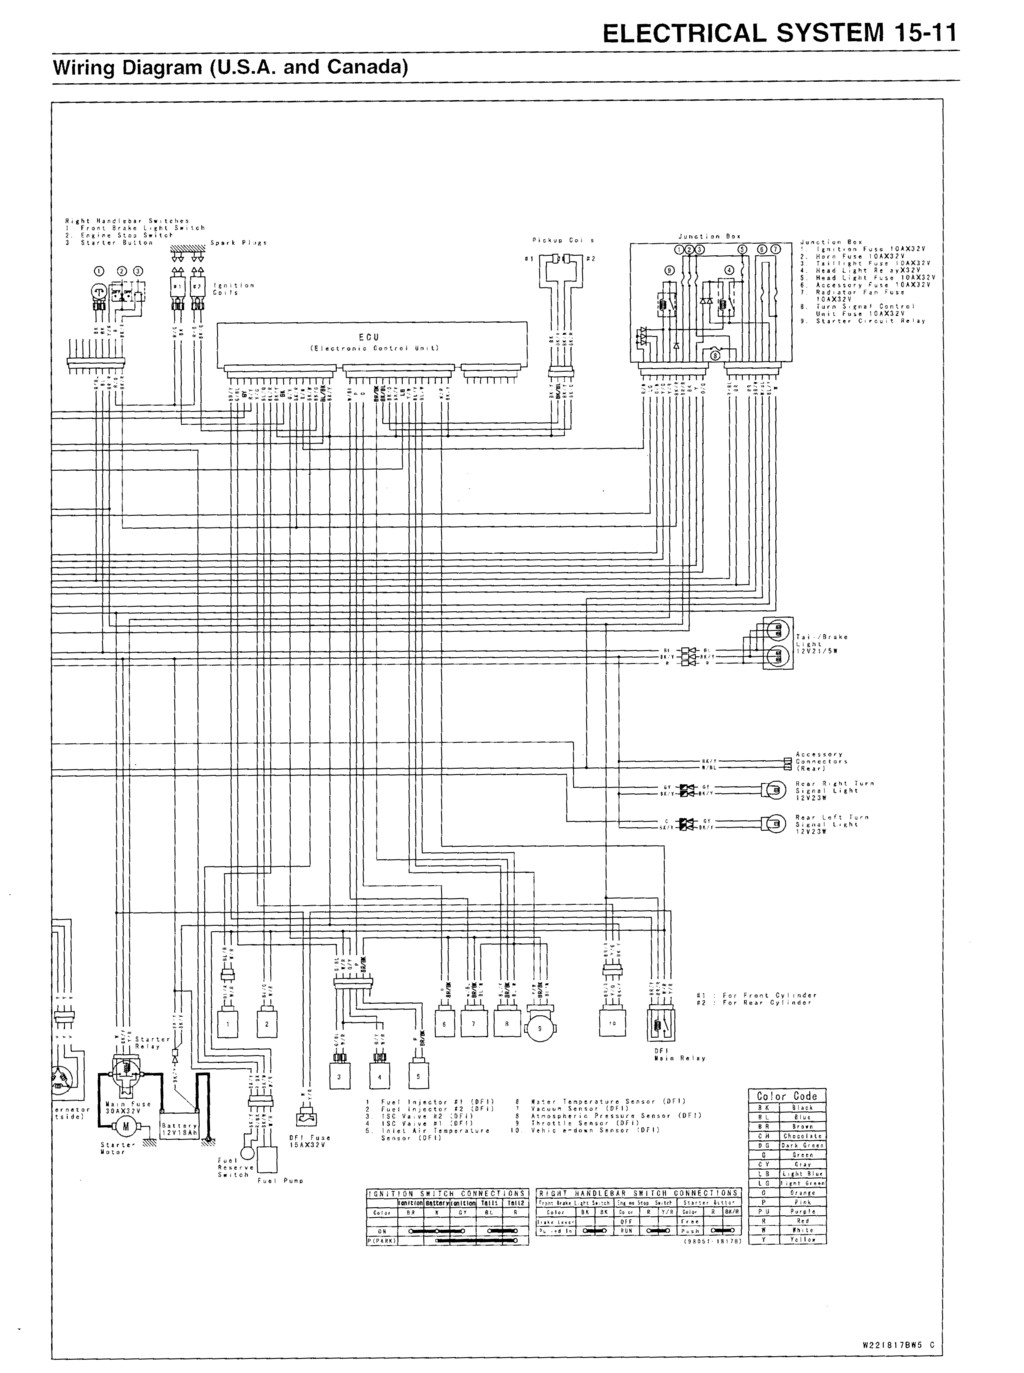 nomad_wiring_diagram_carbed_p2 vulcan wiring diagrams gadget's fixit page Kawasaki Vulcan 800 Wiring Diagram at metegol.co